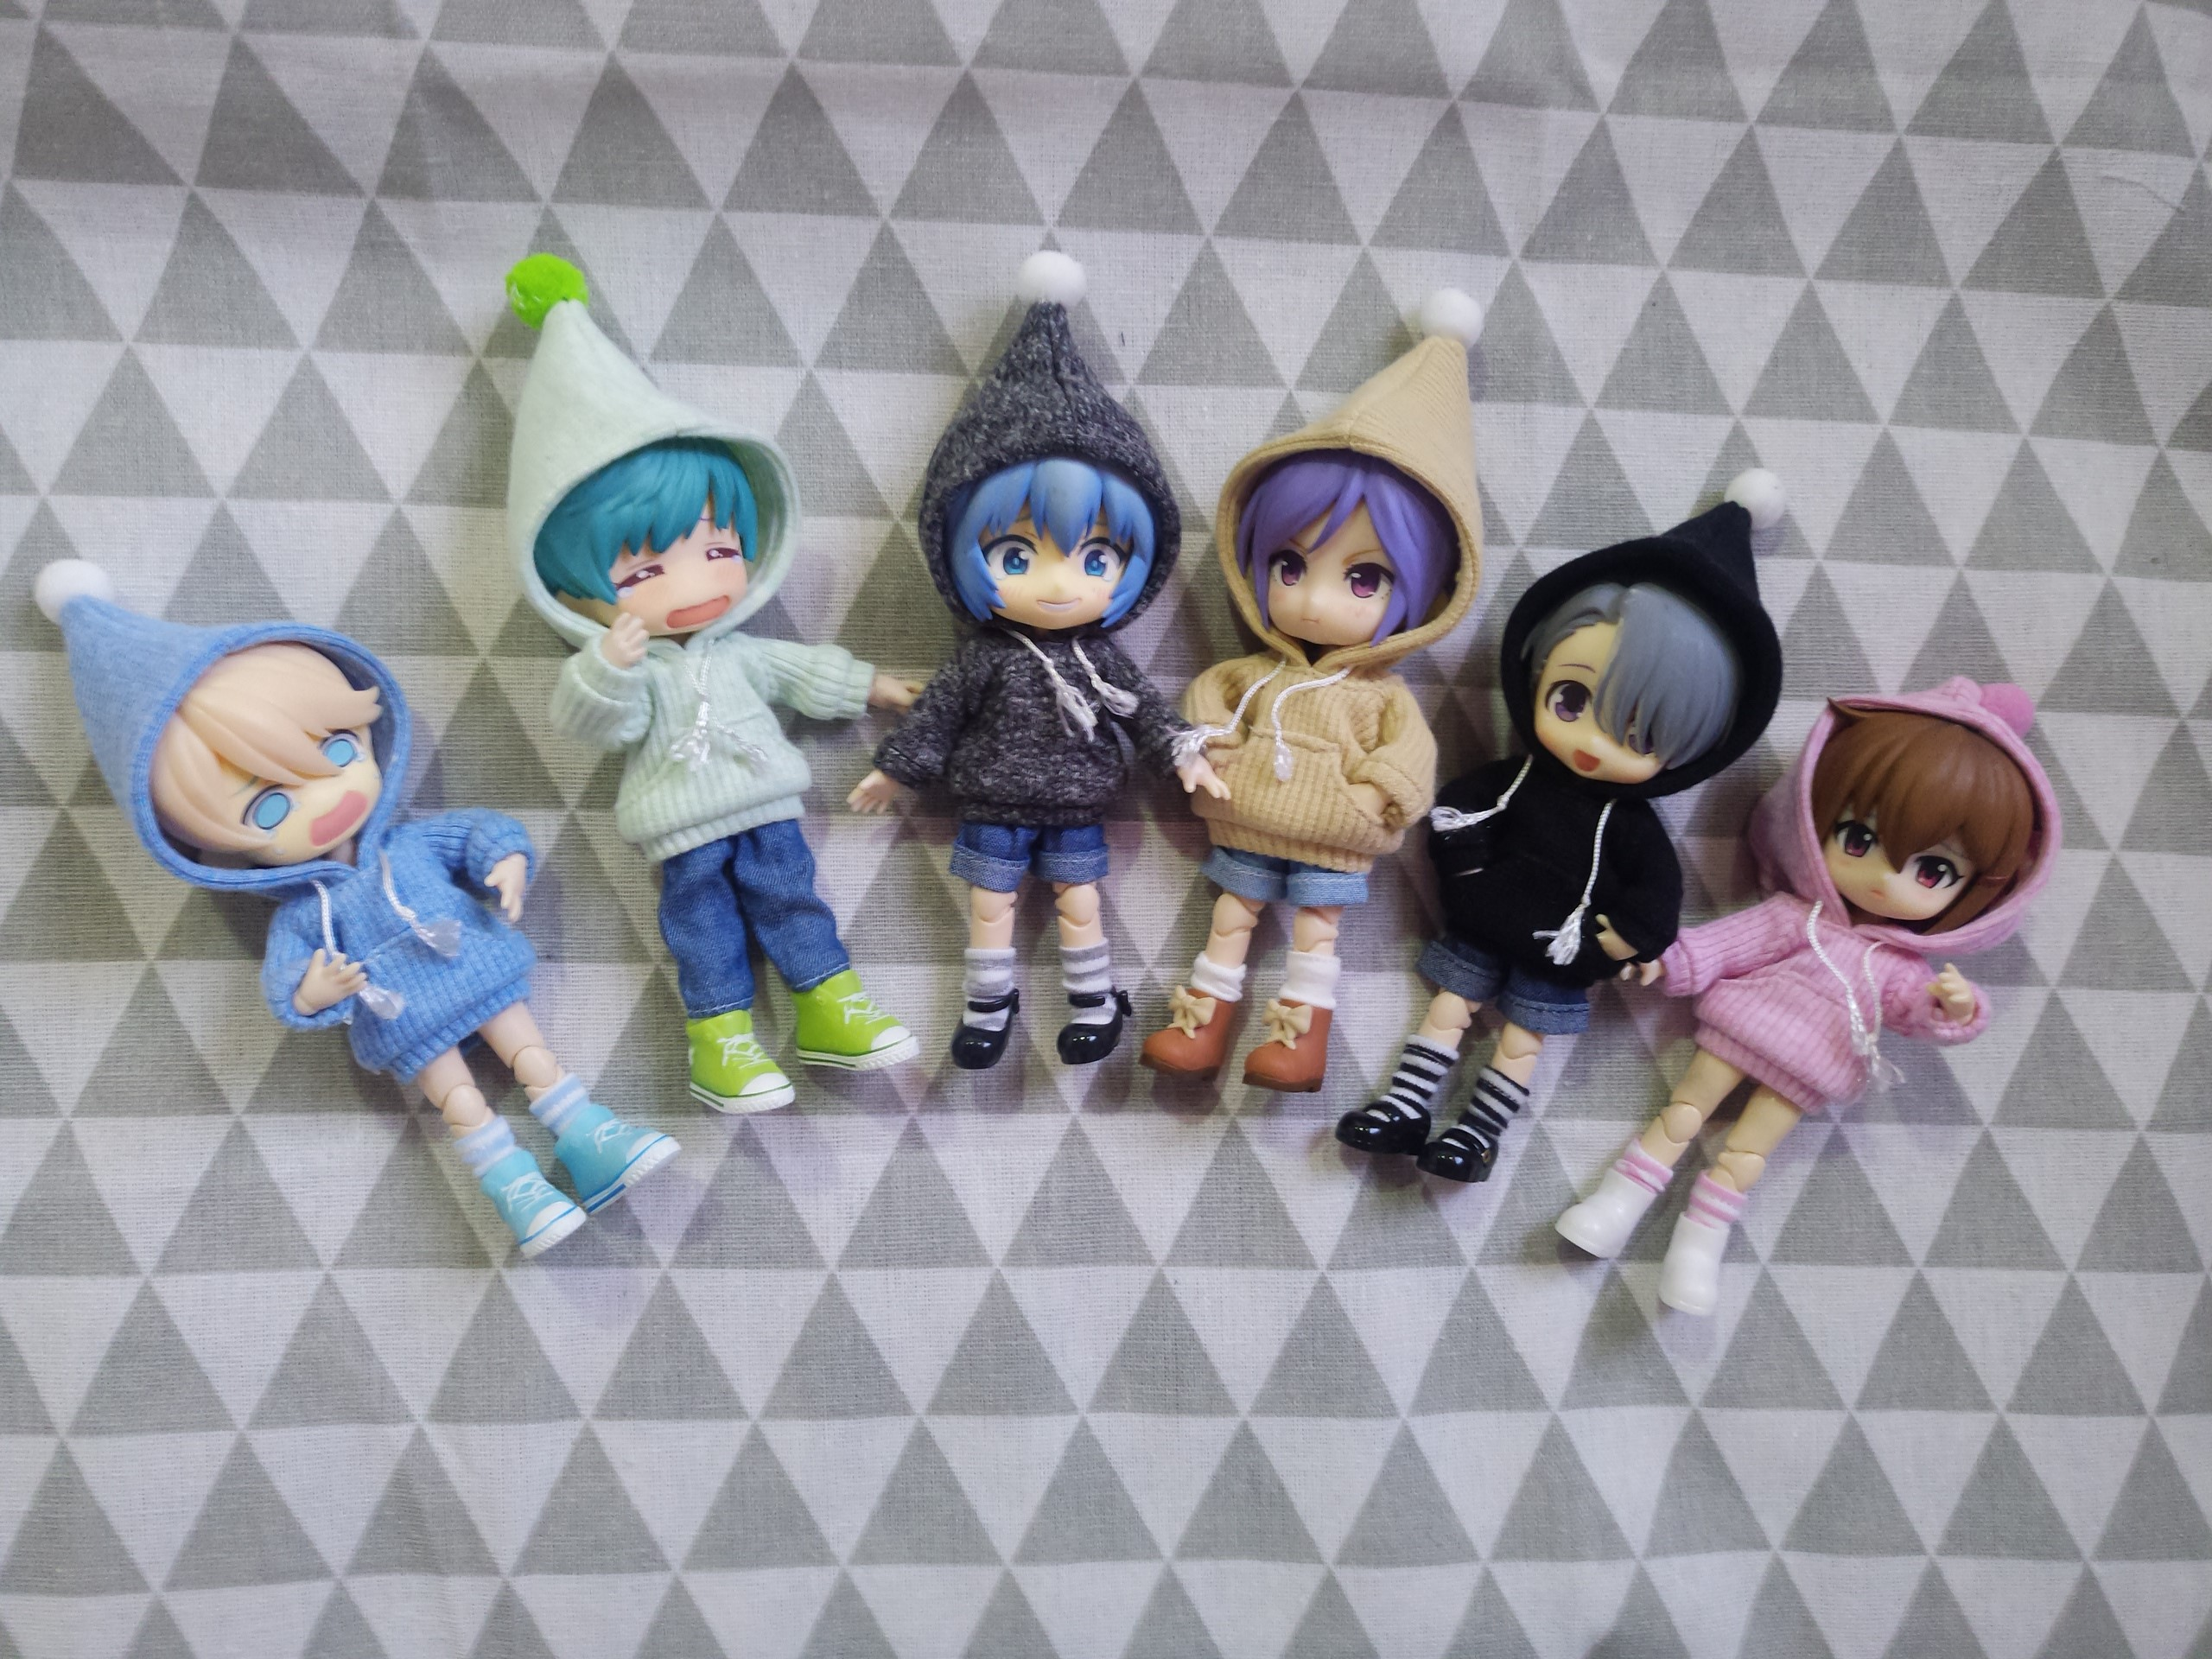 2019 Sweatshirt Clothe Set For Obitsu11 OB11 1/12 Doll OB11 Doll Gsc Molly Available For Cu-poche OB11 Accessories Doll